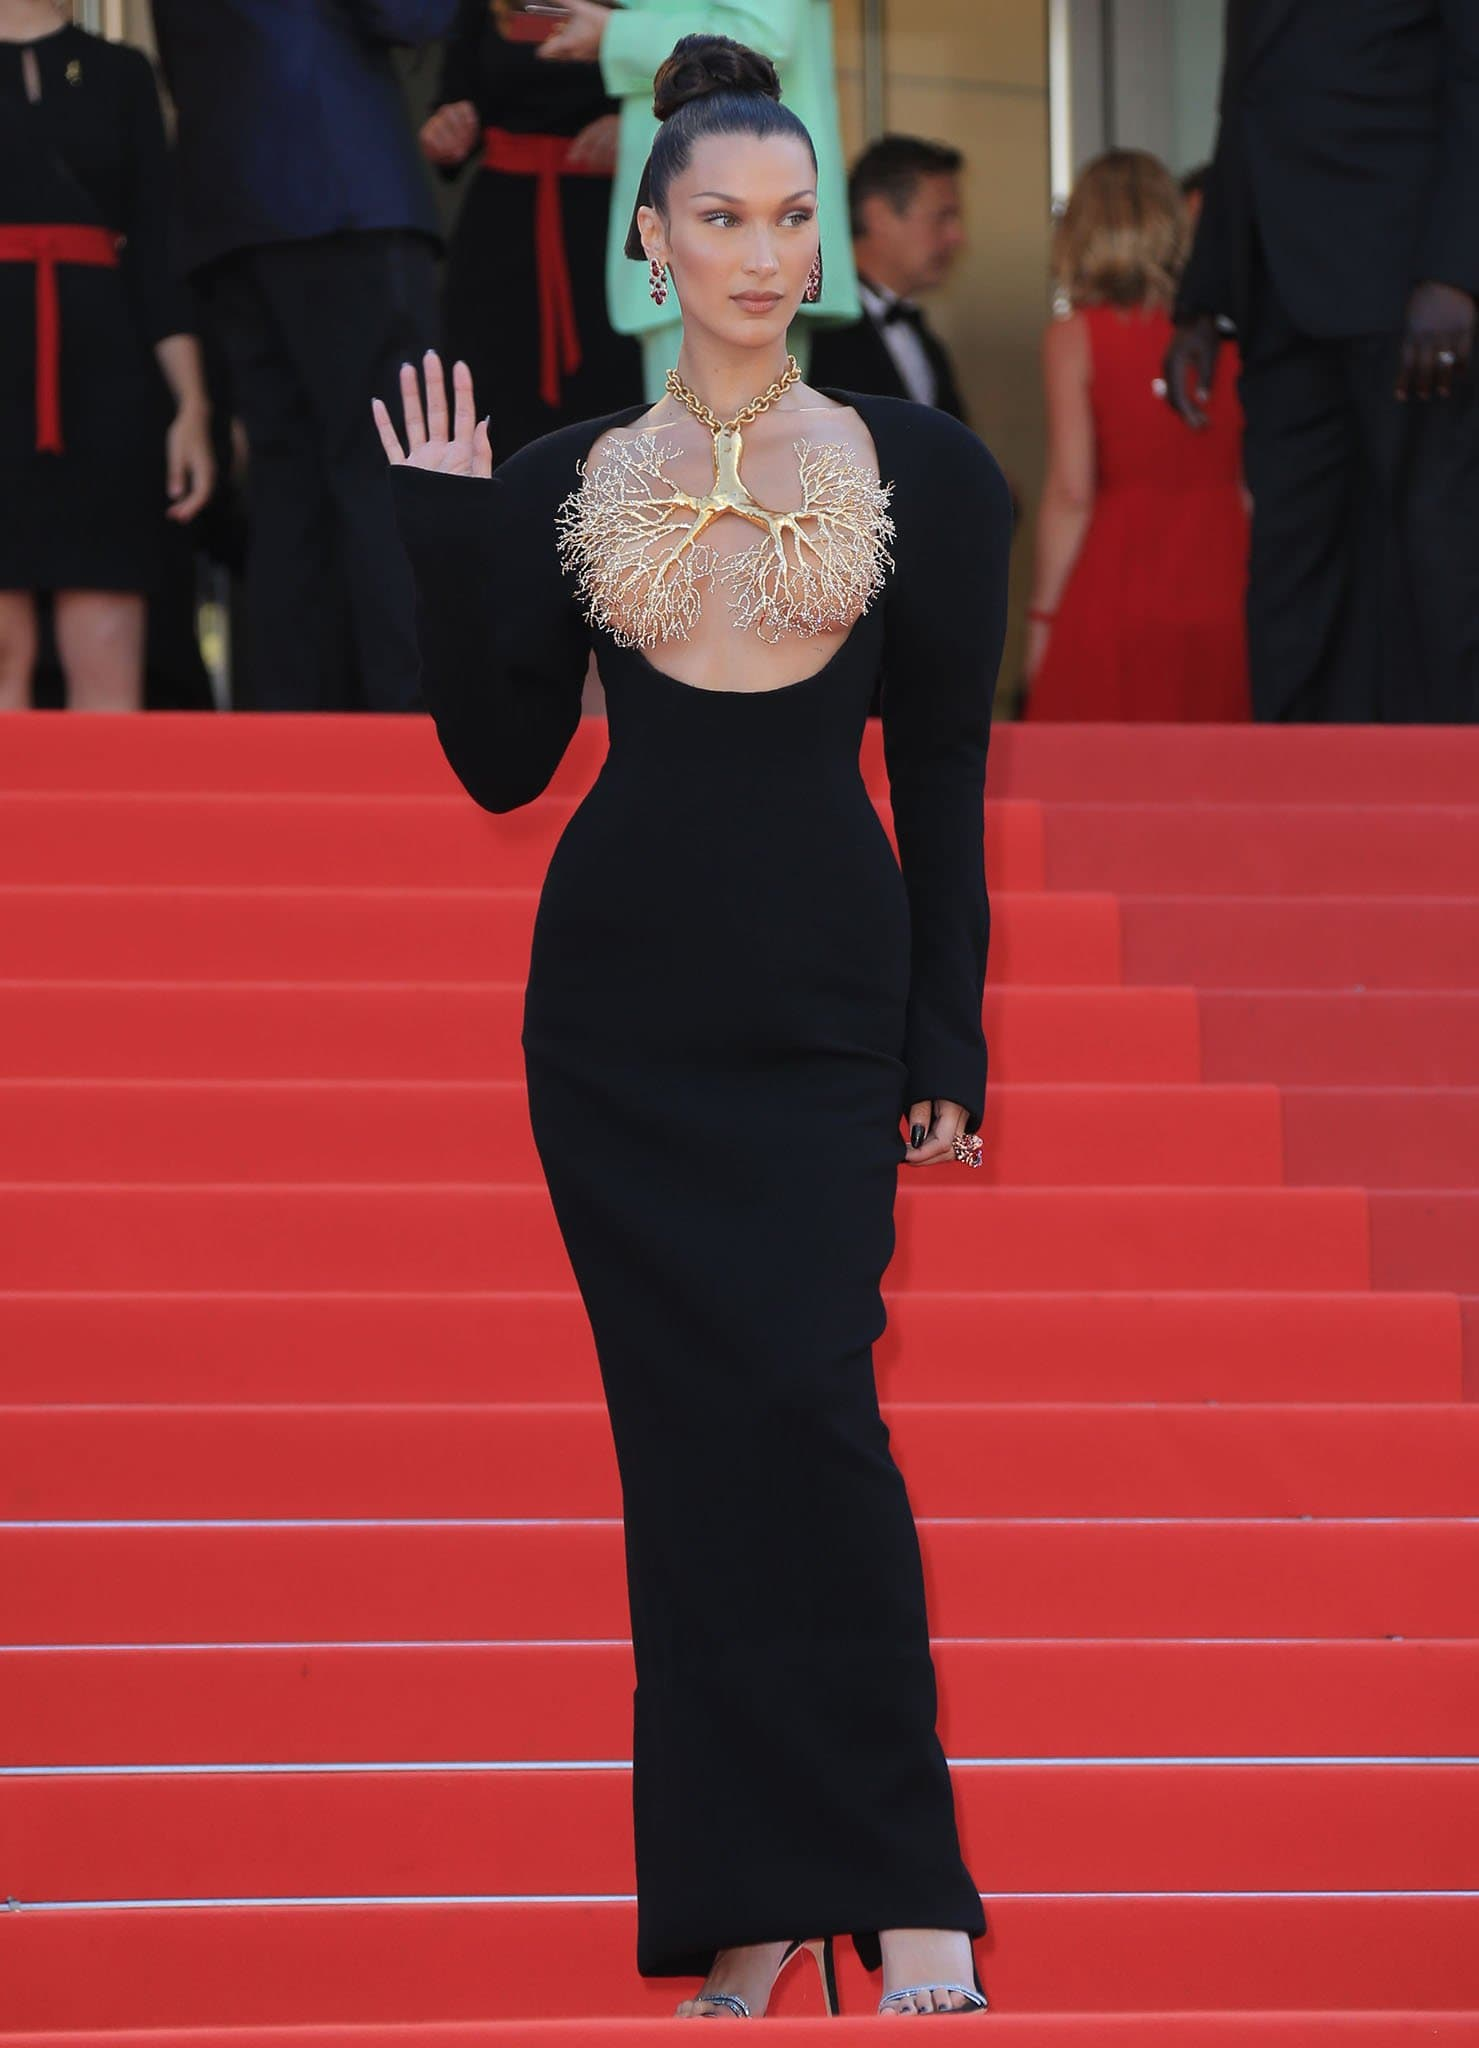 Bella Hadid turns heads in an open neckline black gown from Schiaparelli at the Tre Piani Cannes Film Festival screening on July 11, 2021